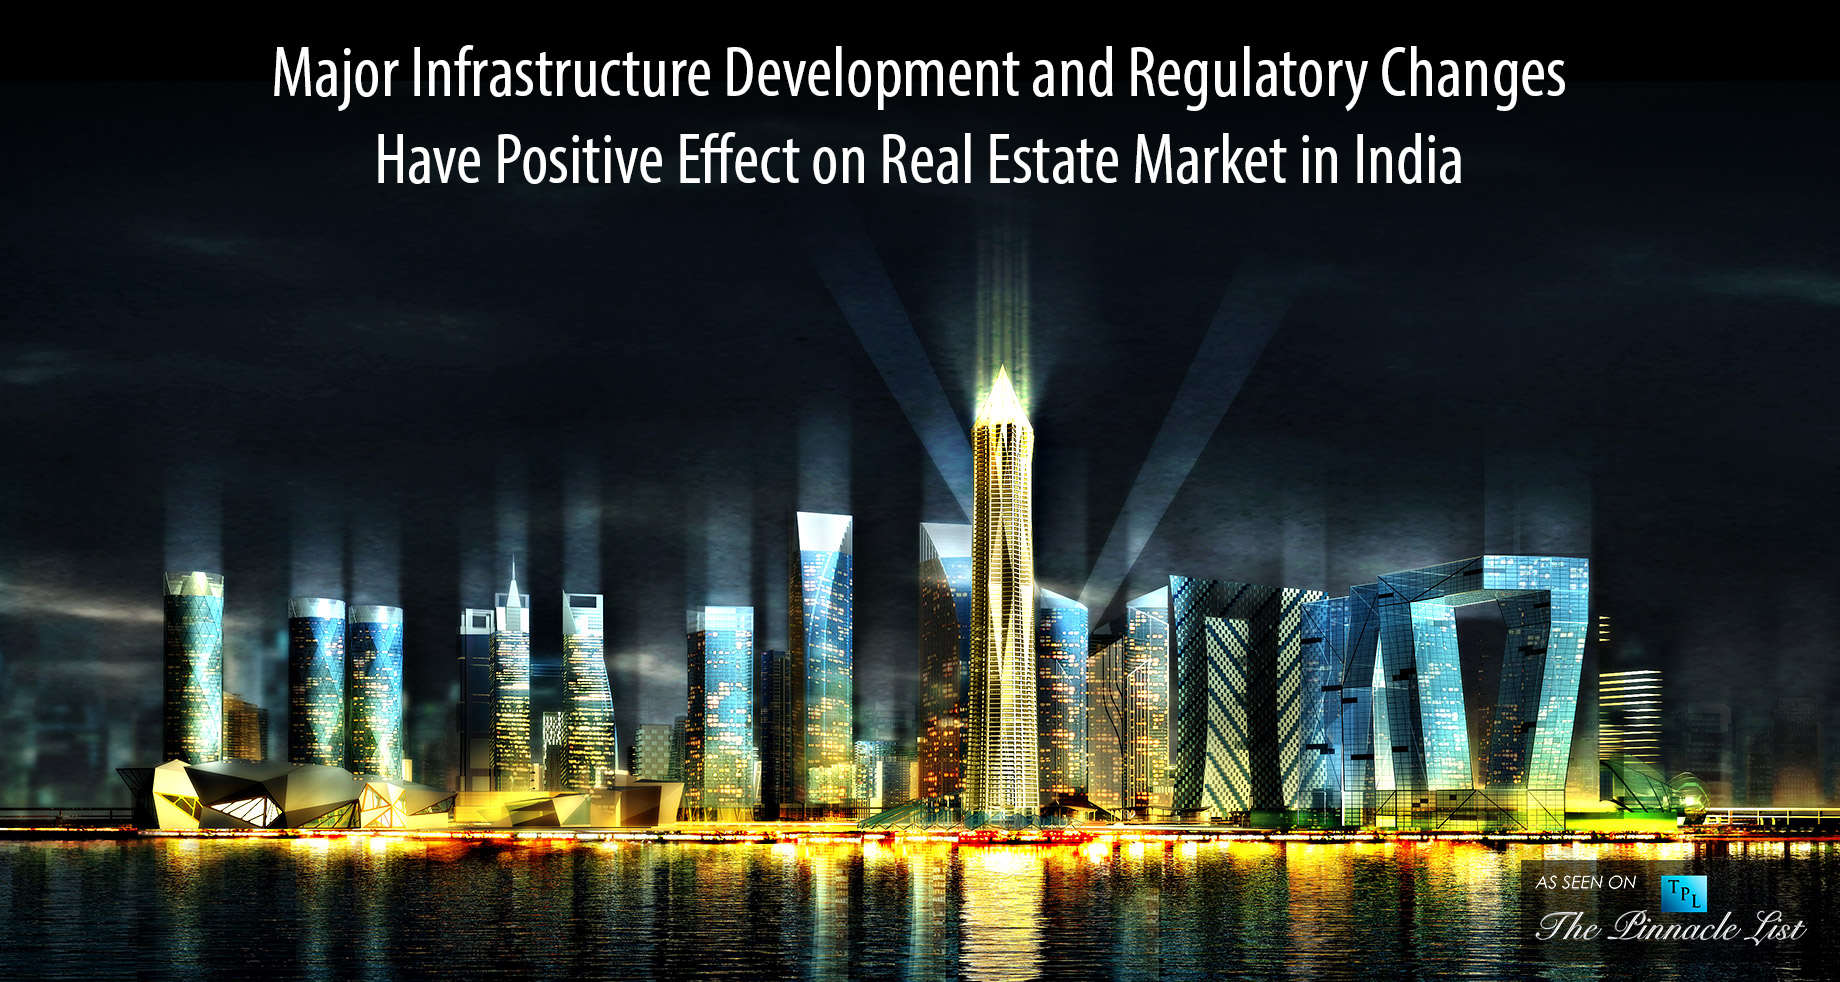 Major Changes and Their Effects on the Indian Real Estate